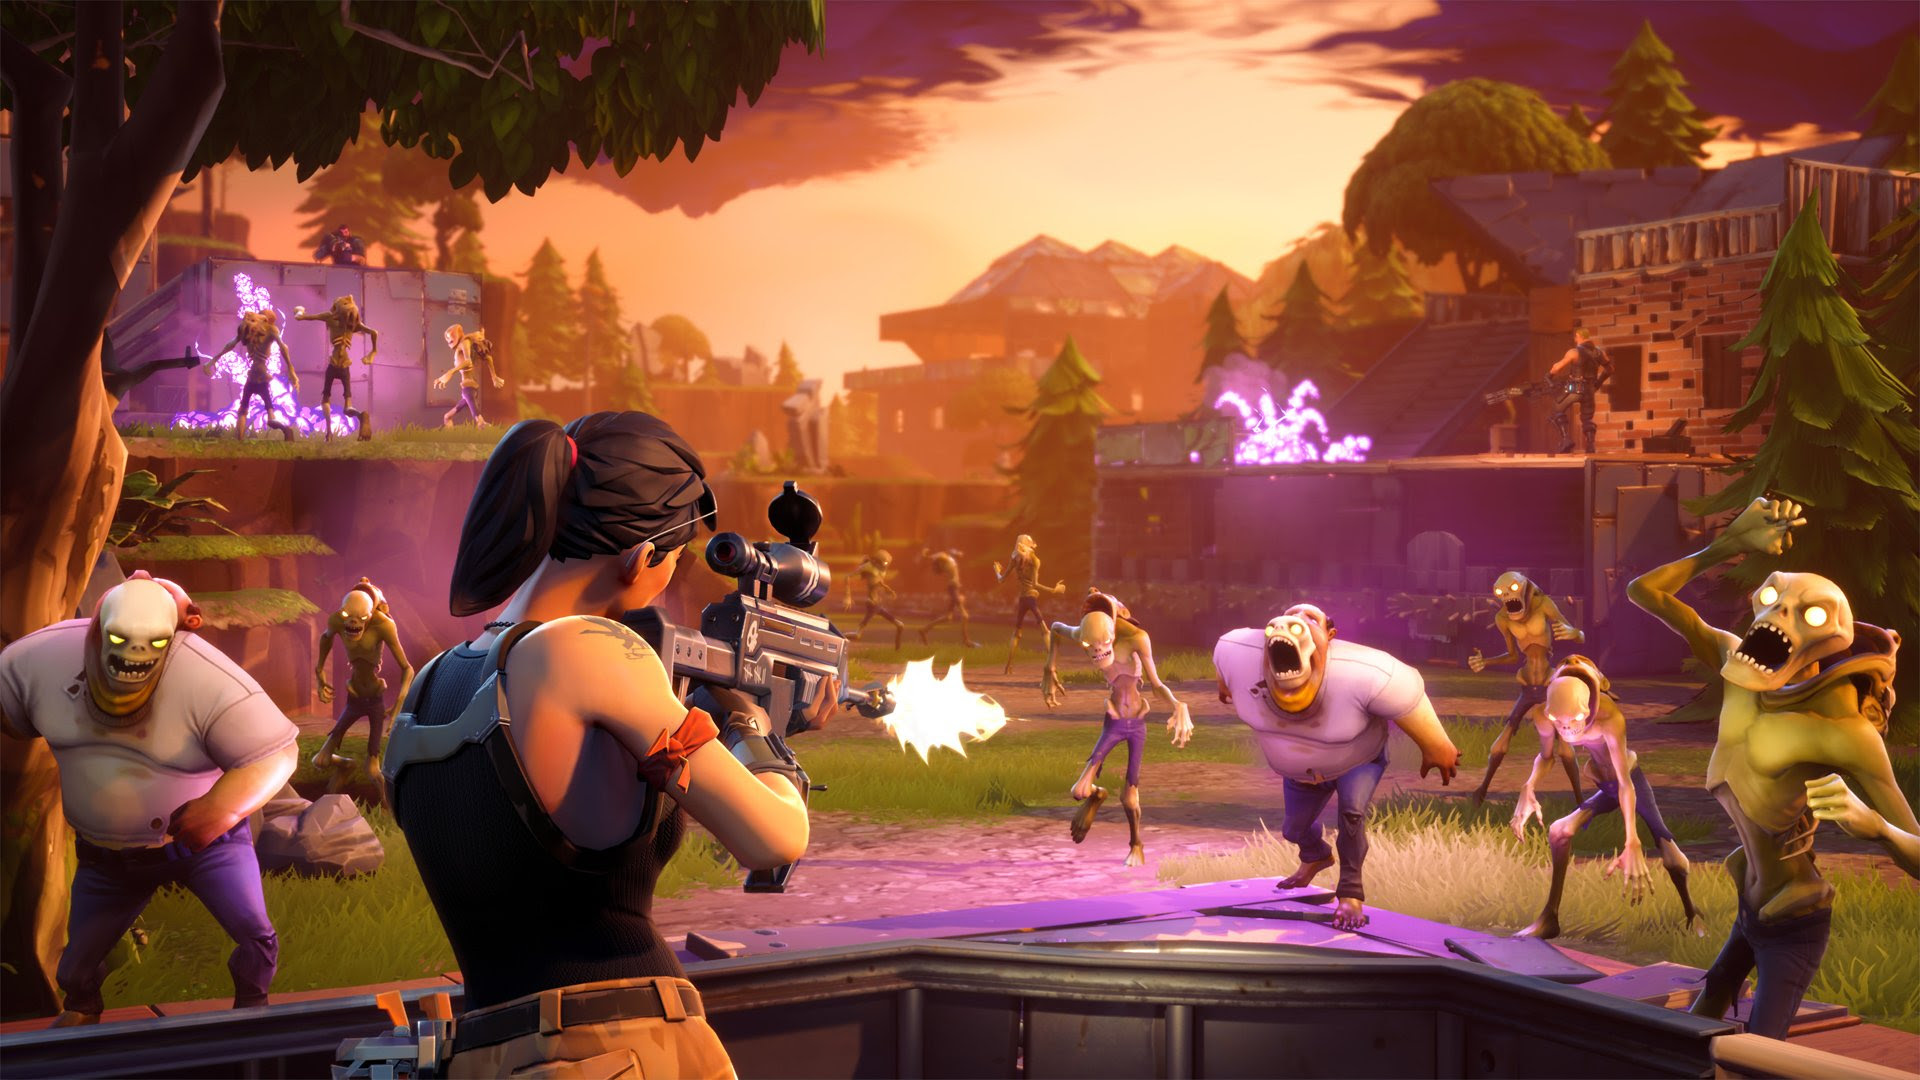 For better or worse, Fortnite seems like a real time sink screenshot